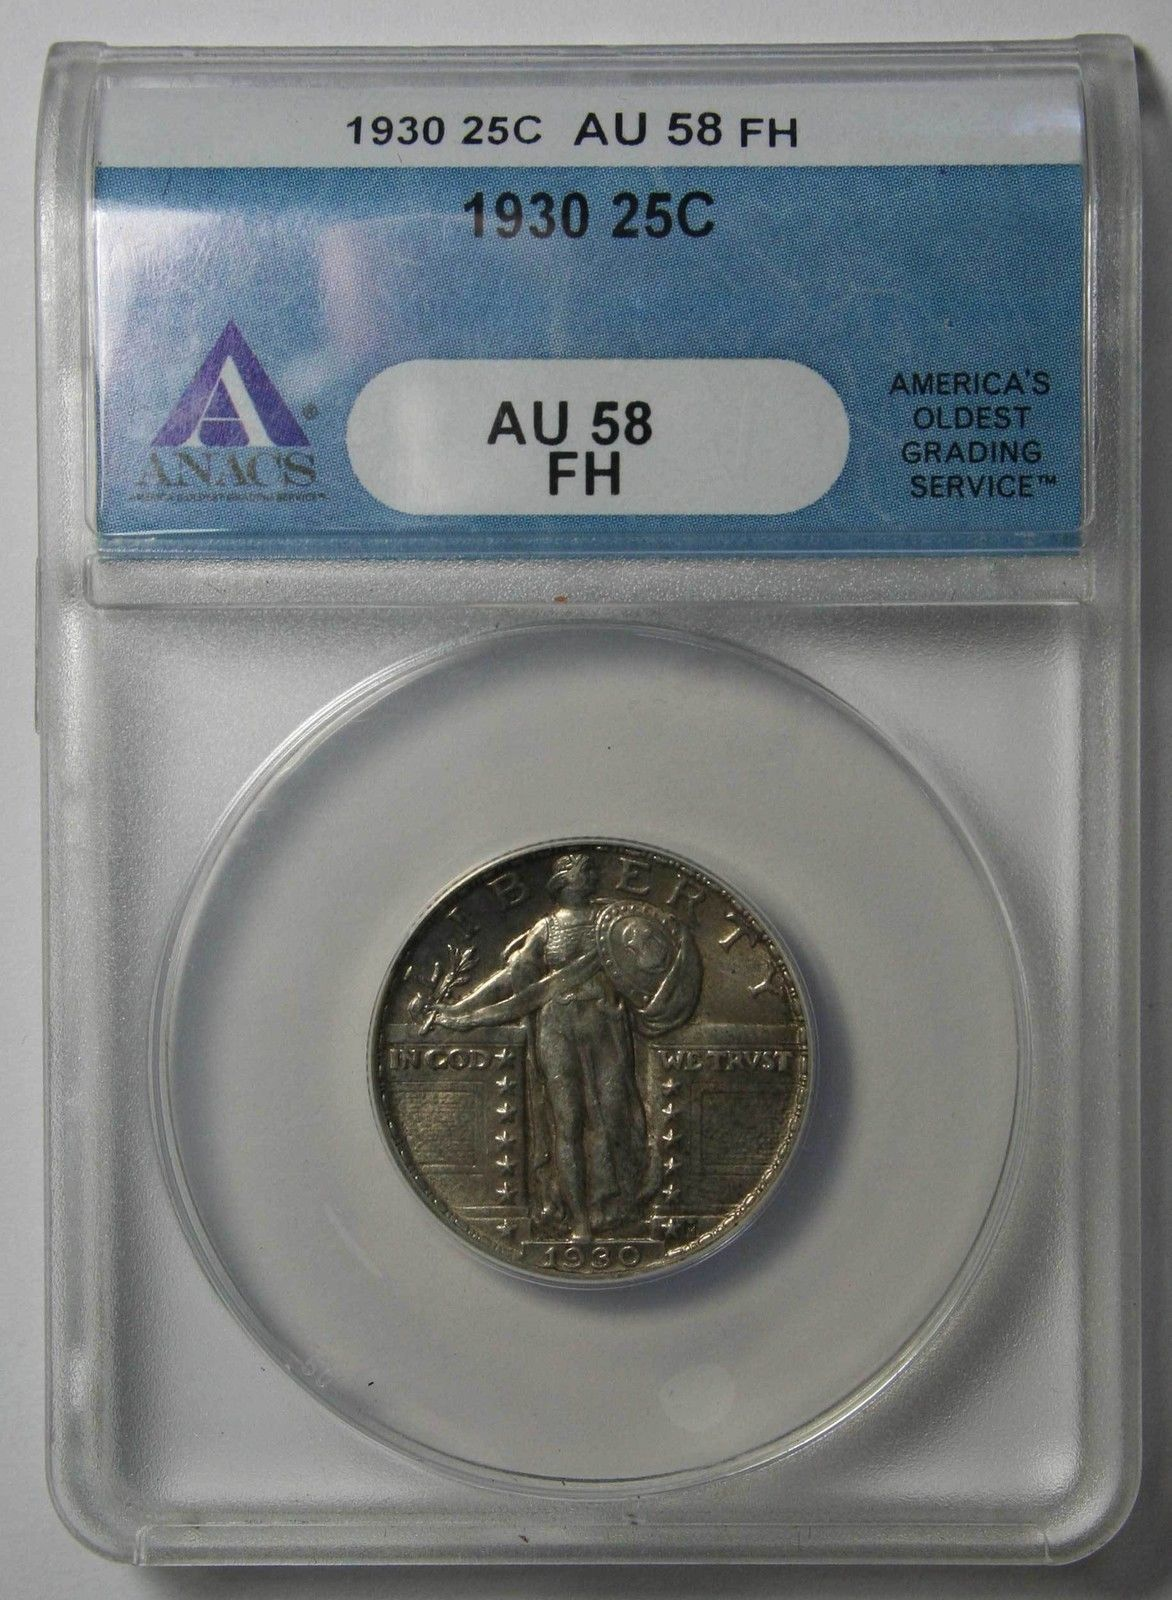 1930 STANDING LIBERTY QUARTER 25¢ Coin AU58 FH Full Head ANACS Lot# SR 1139